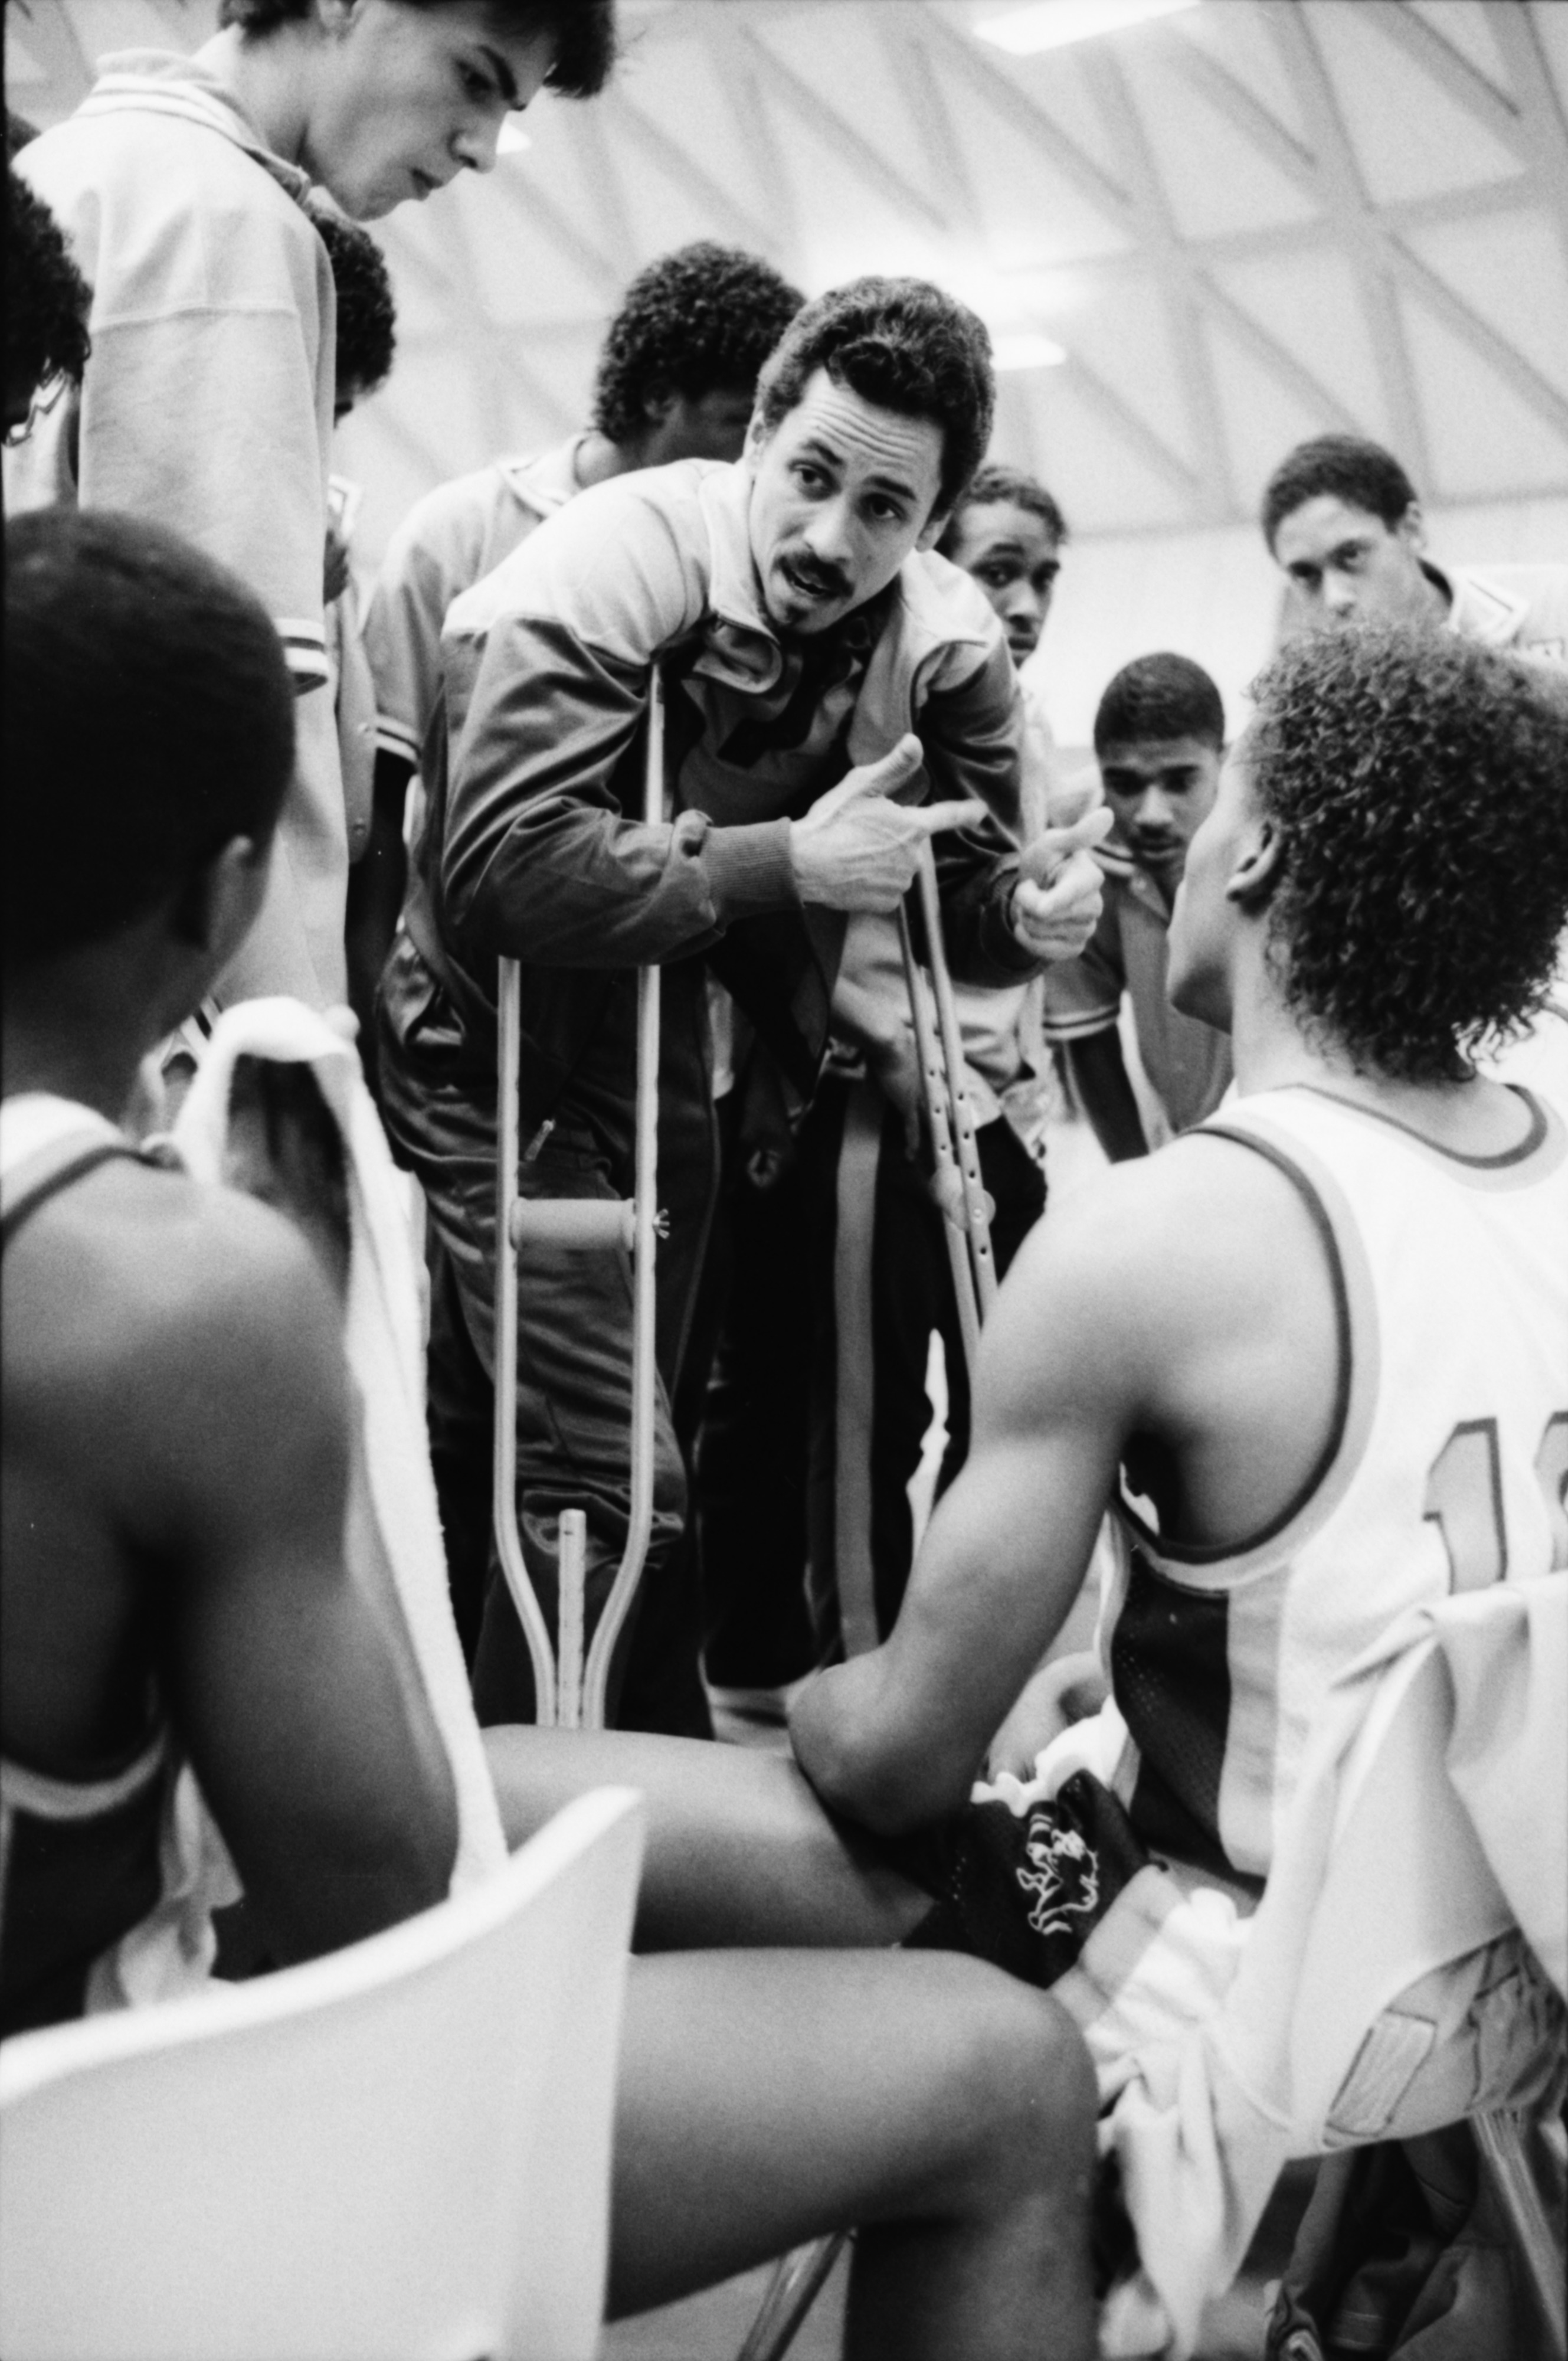 Huron Basketball Coach Harold Simons Gives Pep Talk During 54-53 Playoff Win Against Pioneer, March 1986 image